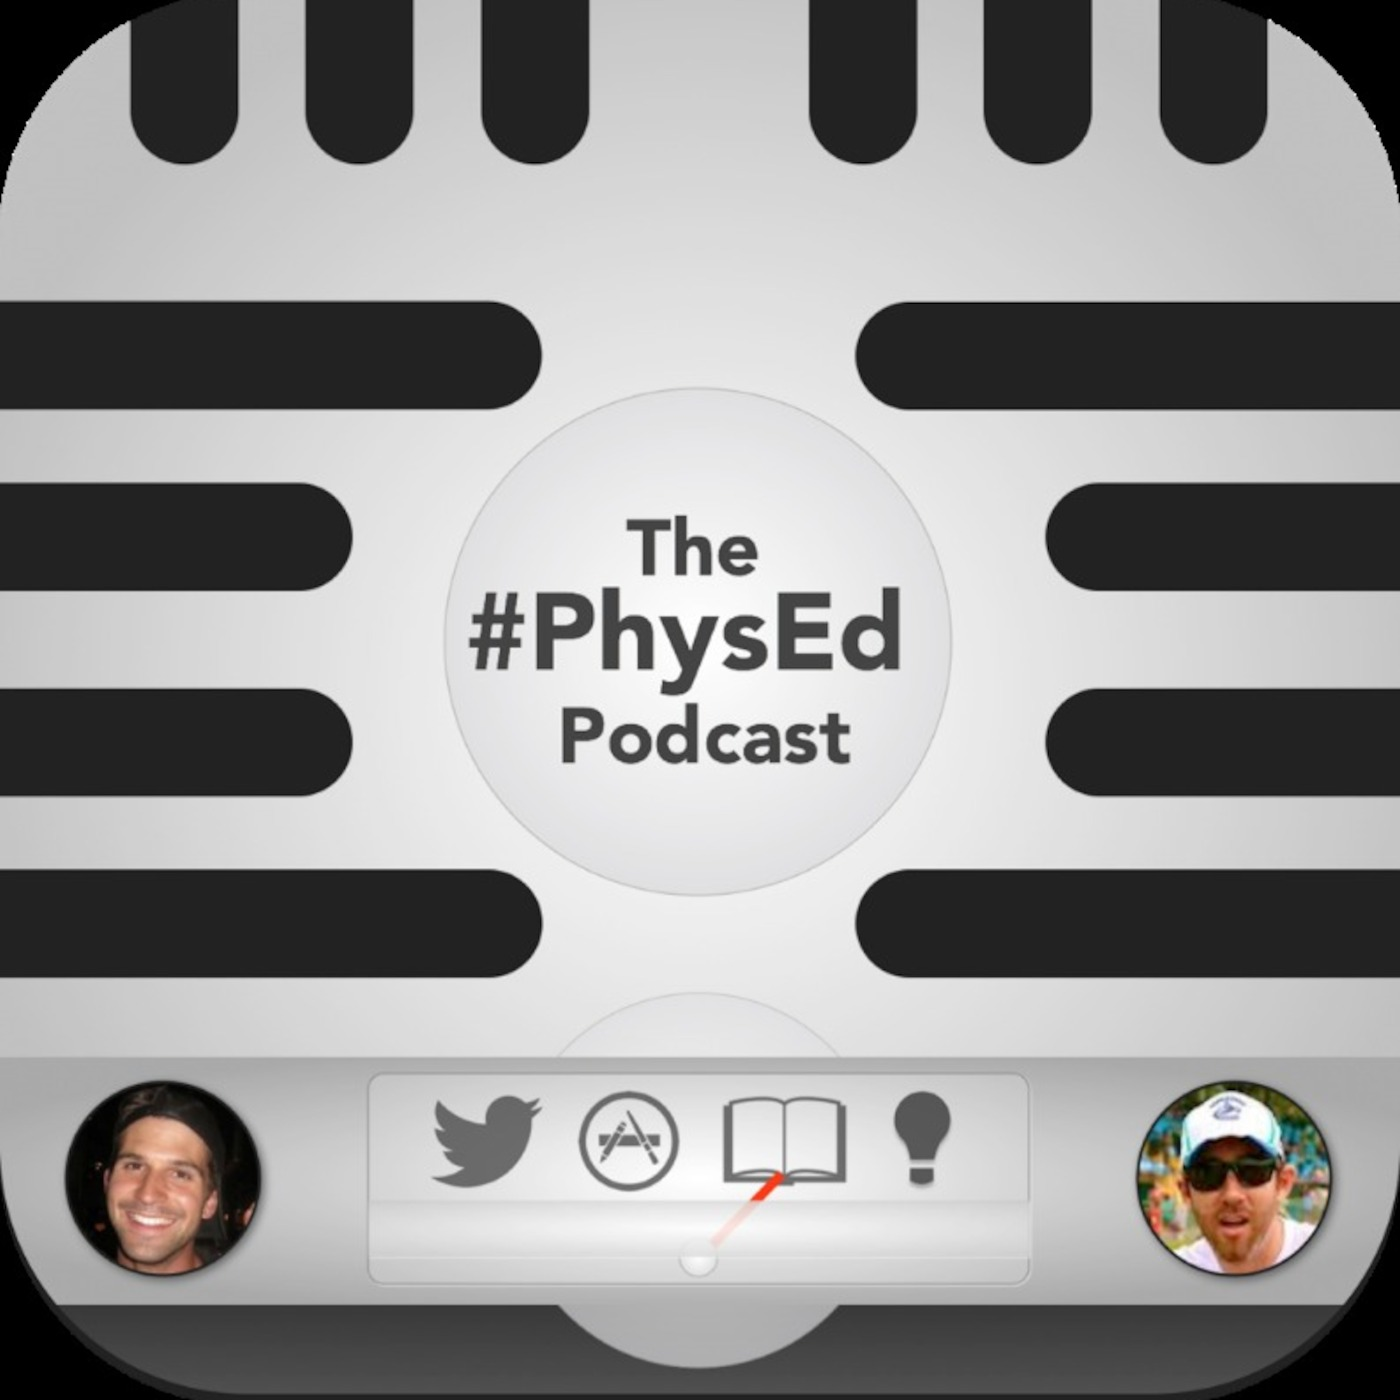 The #PhysEd Podcast